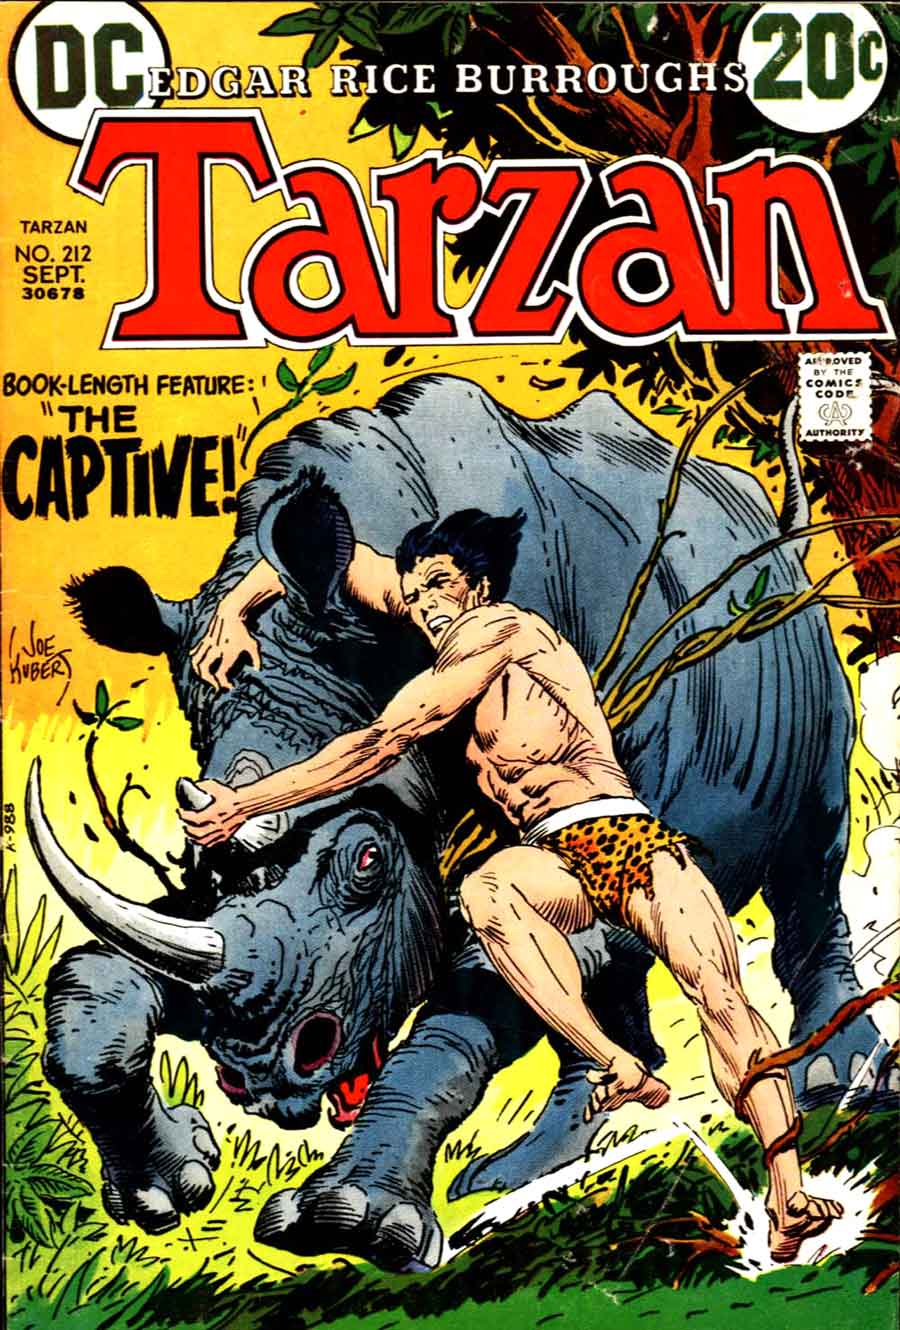 Joe Kubert bronze age dc 1970s comic book cover - Tarzan #212